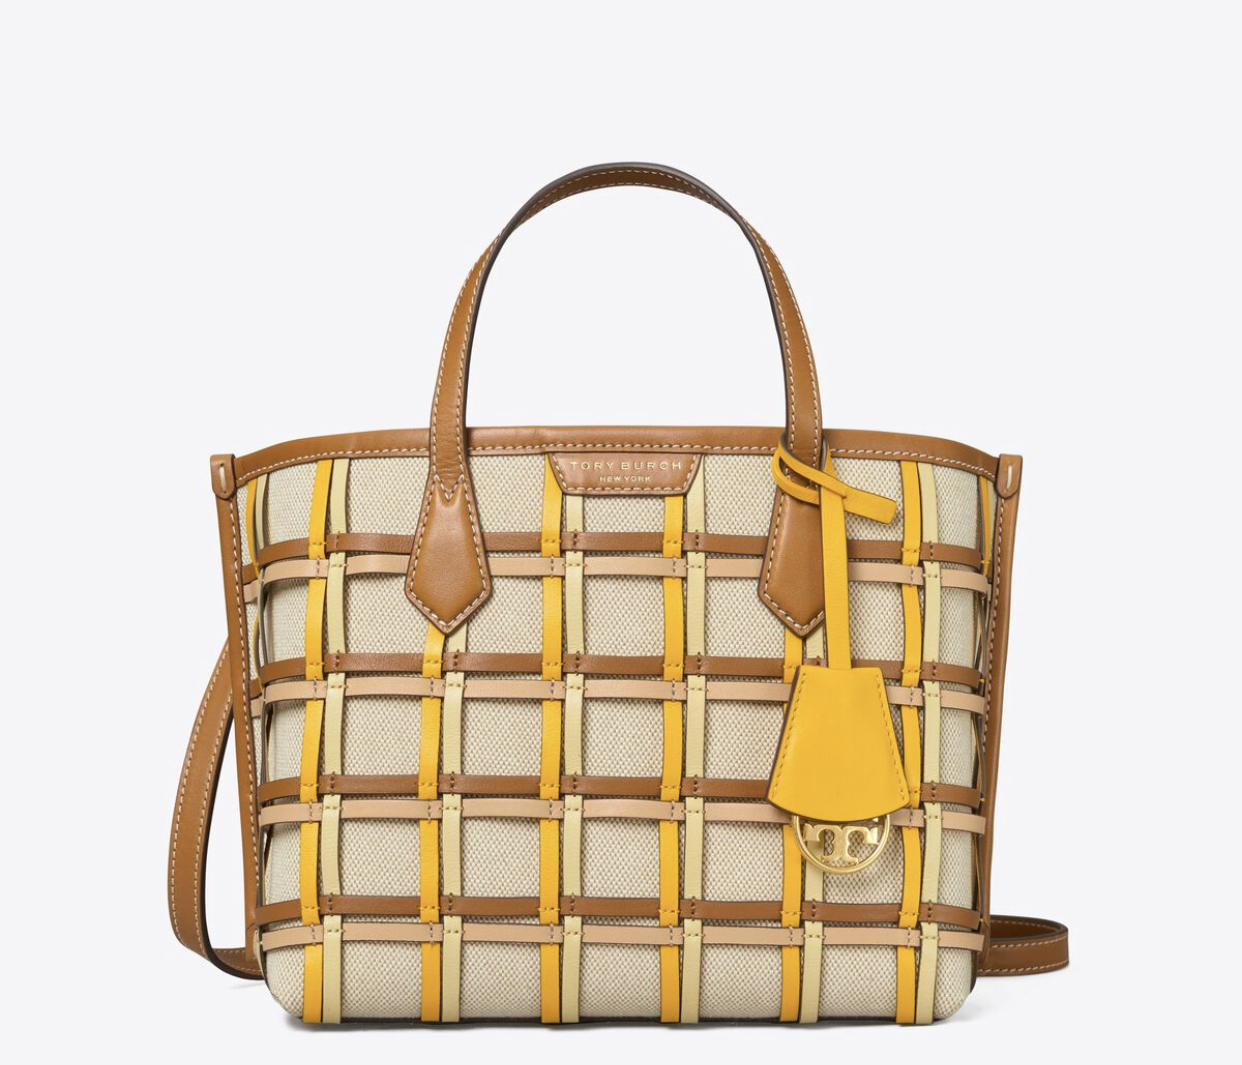 Tory Burch Perry Woven Cage Small Triple Compartment Tote